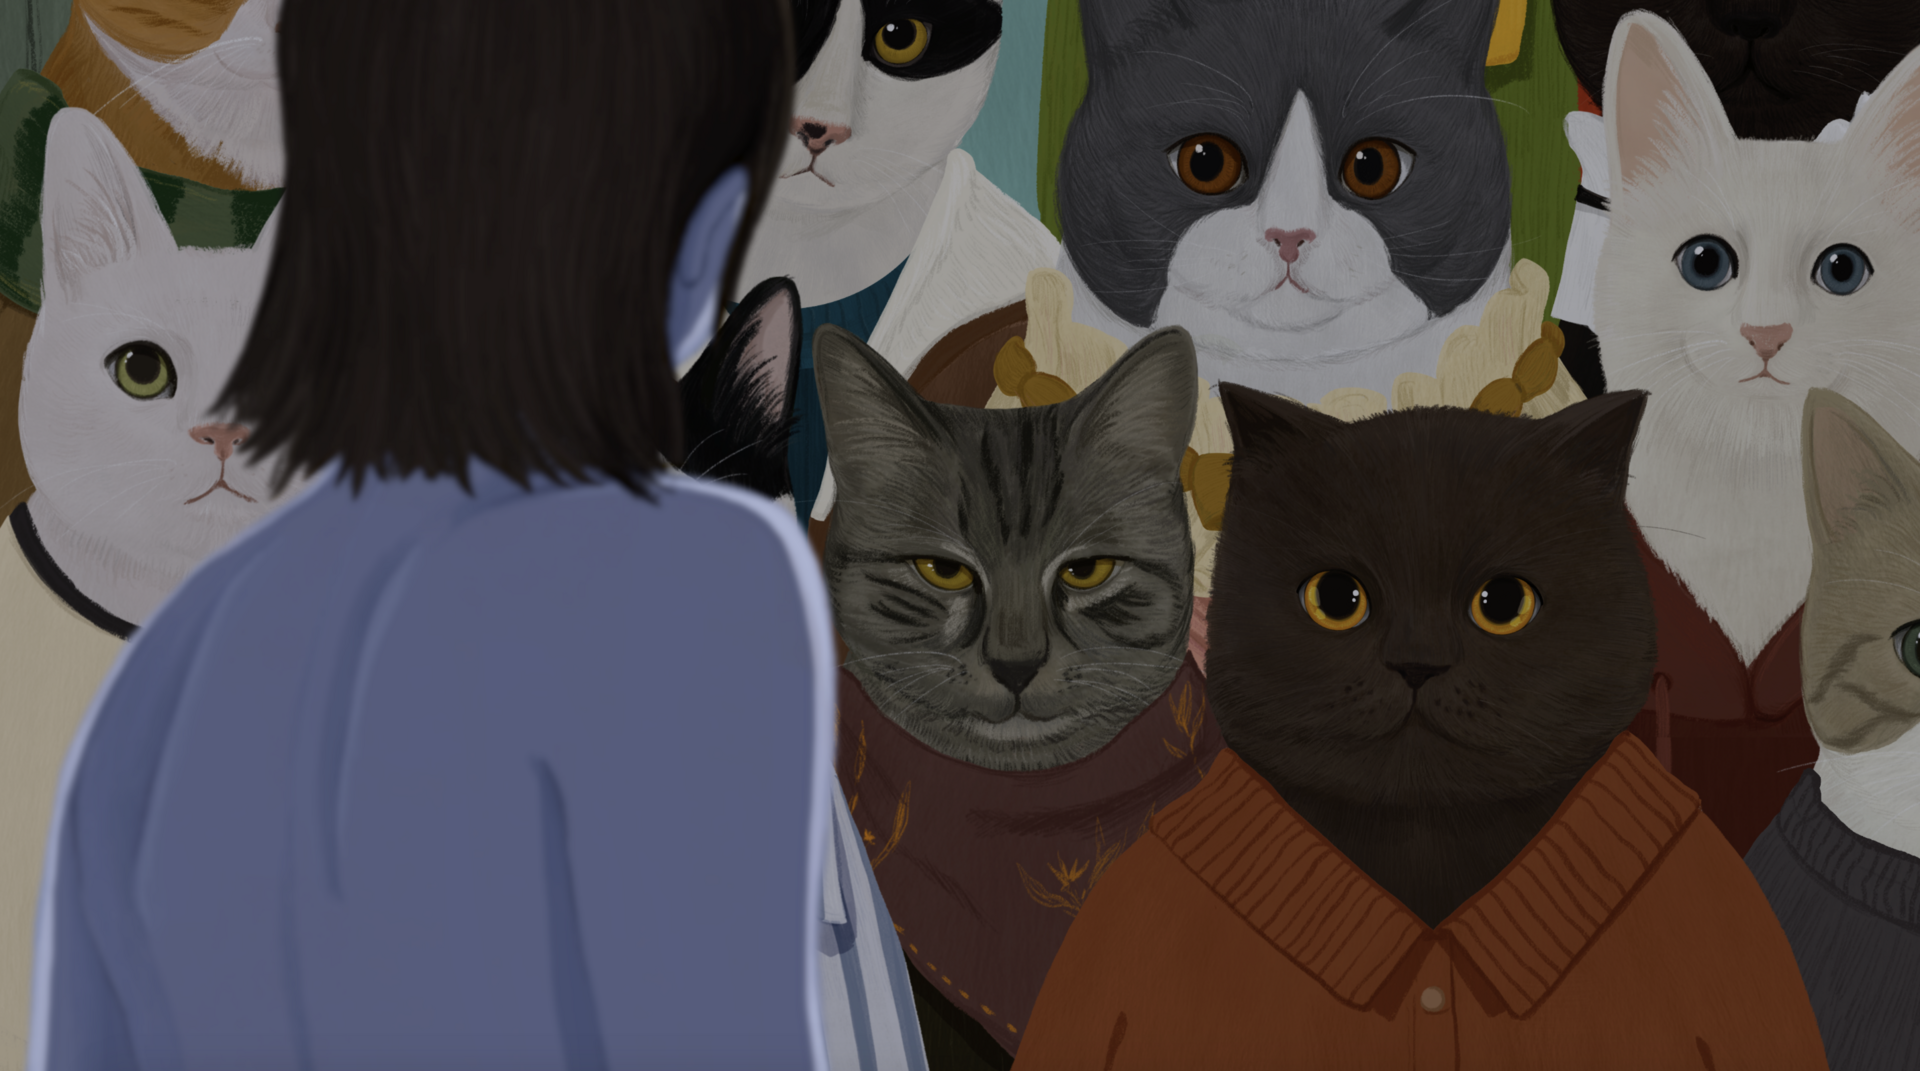 Being Watched by Cats (Human's  Perspective)